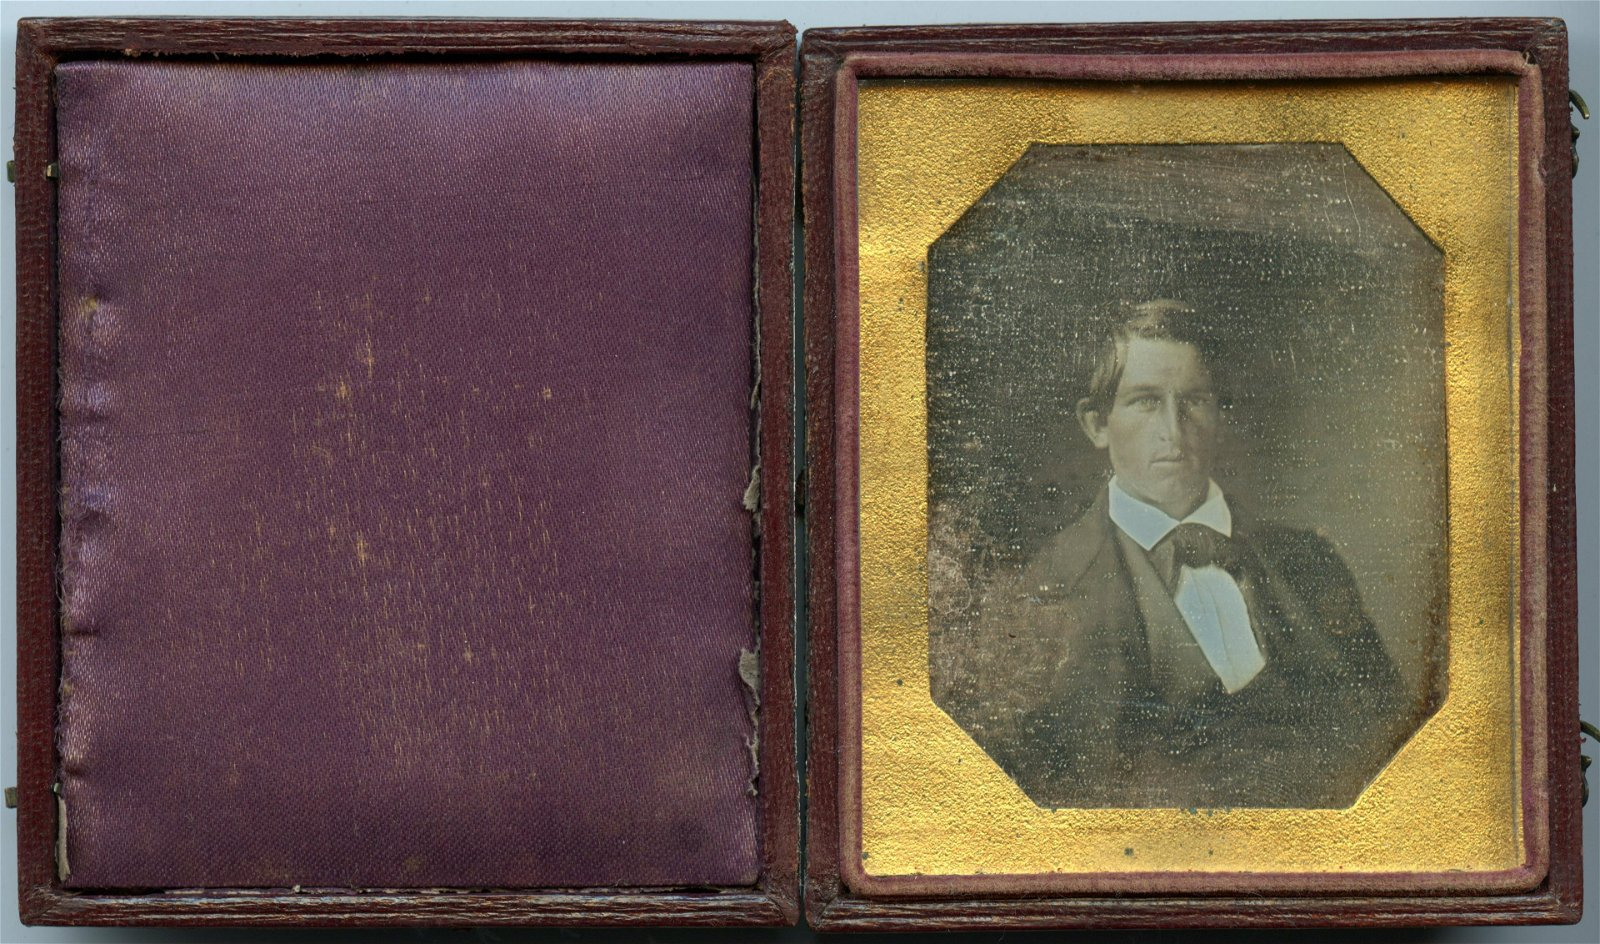 Early Sixth Plate Daguerreotype of a Seated Man